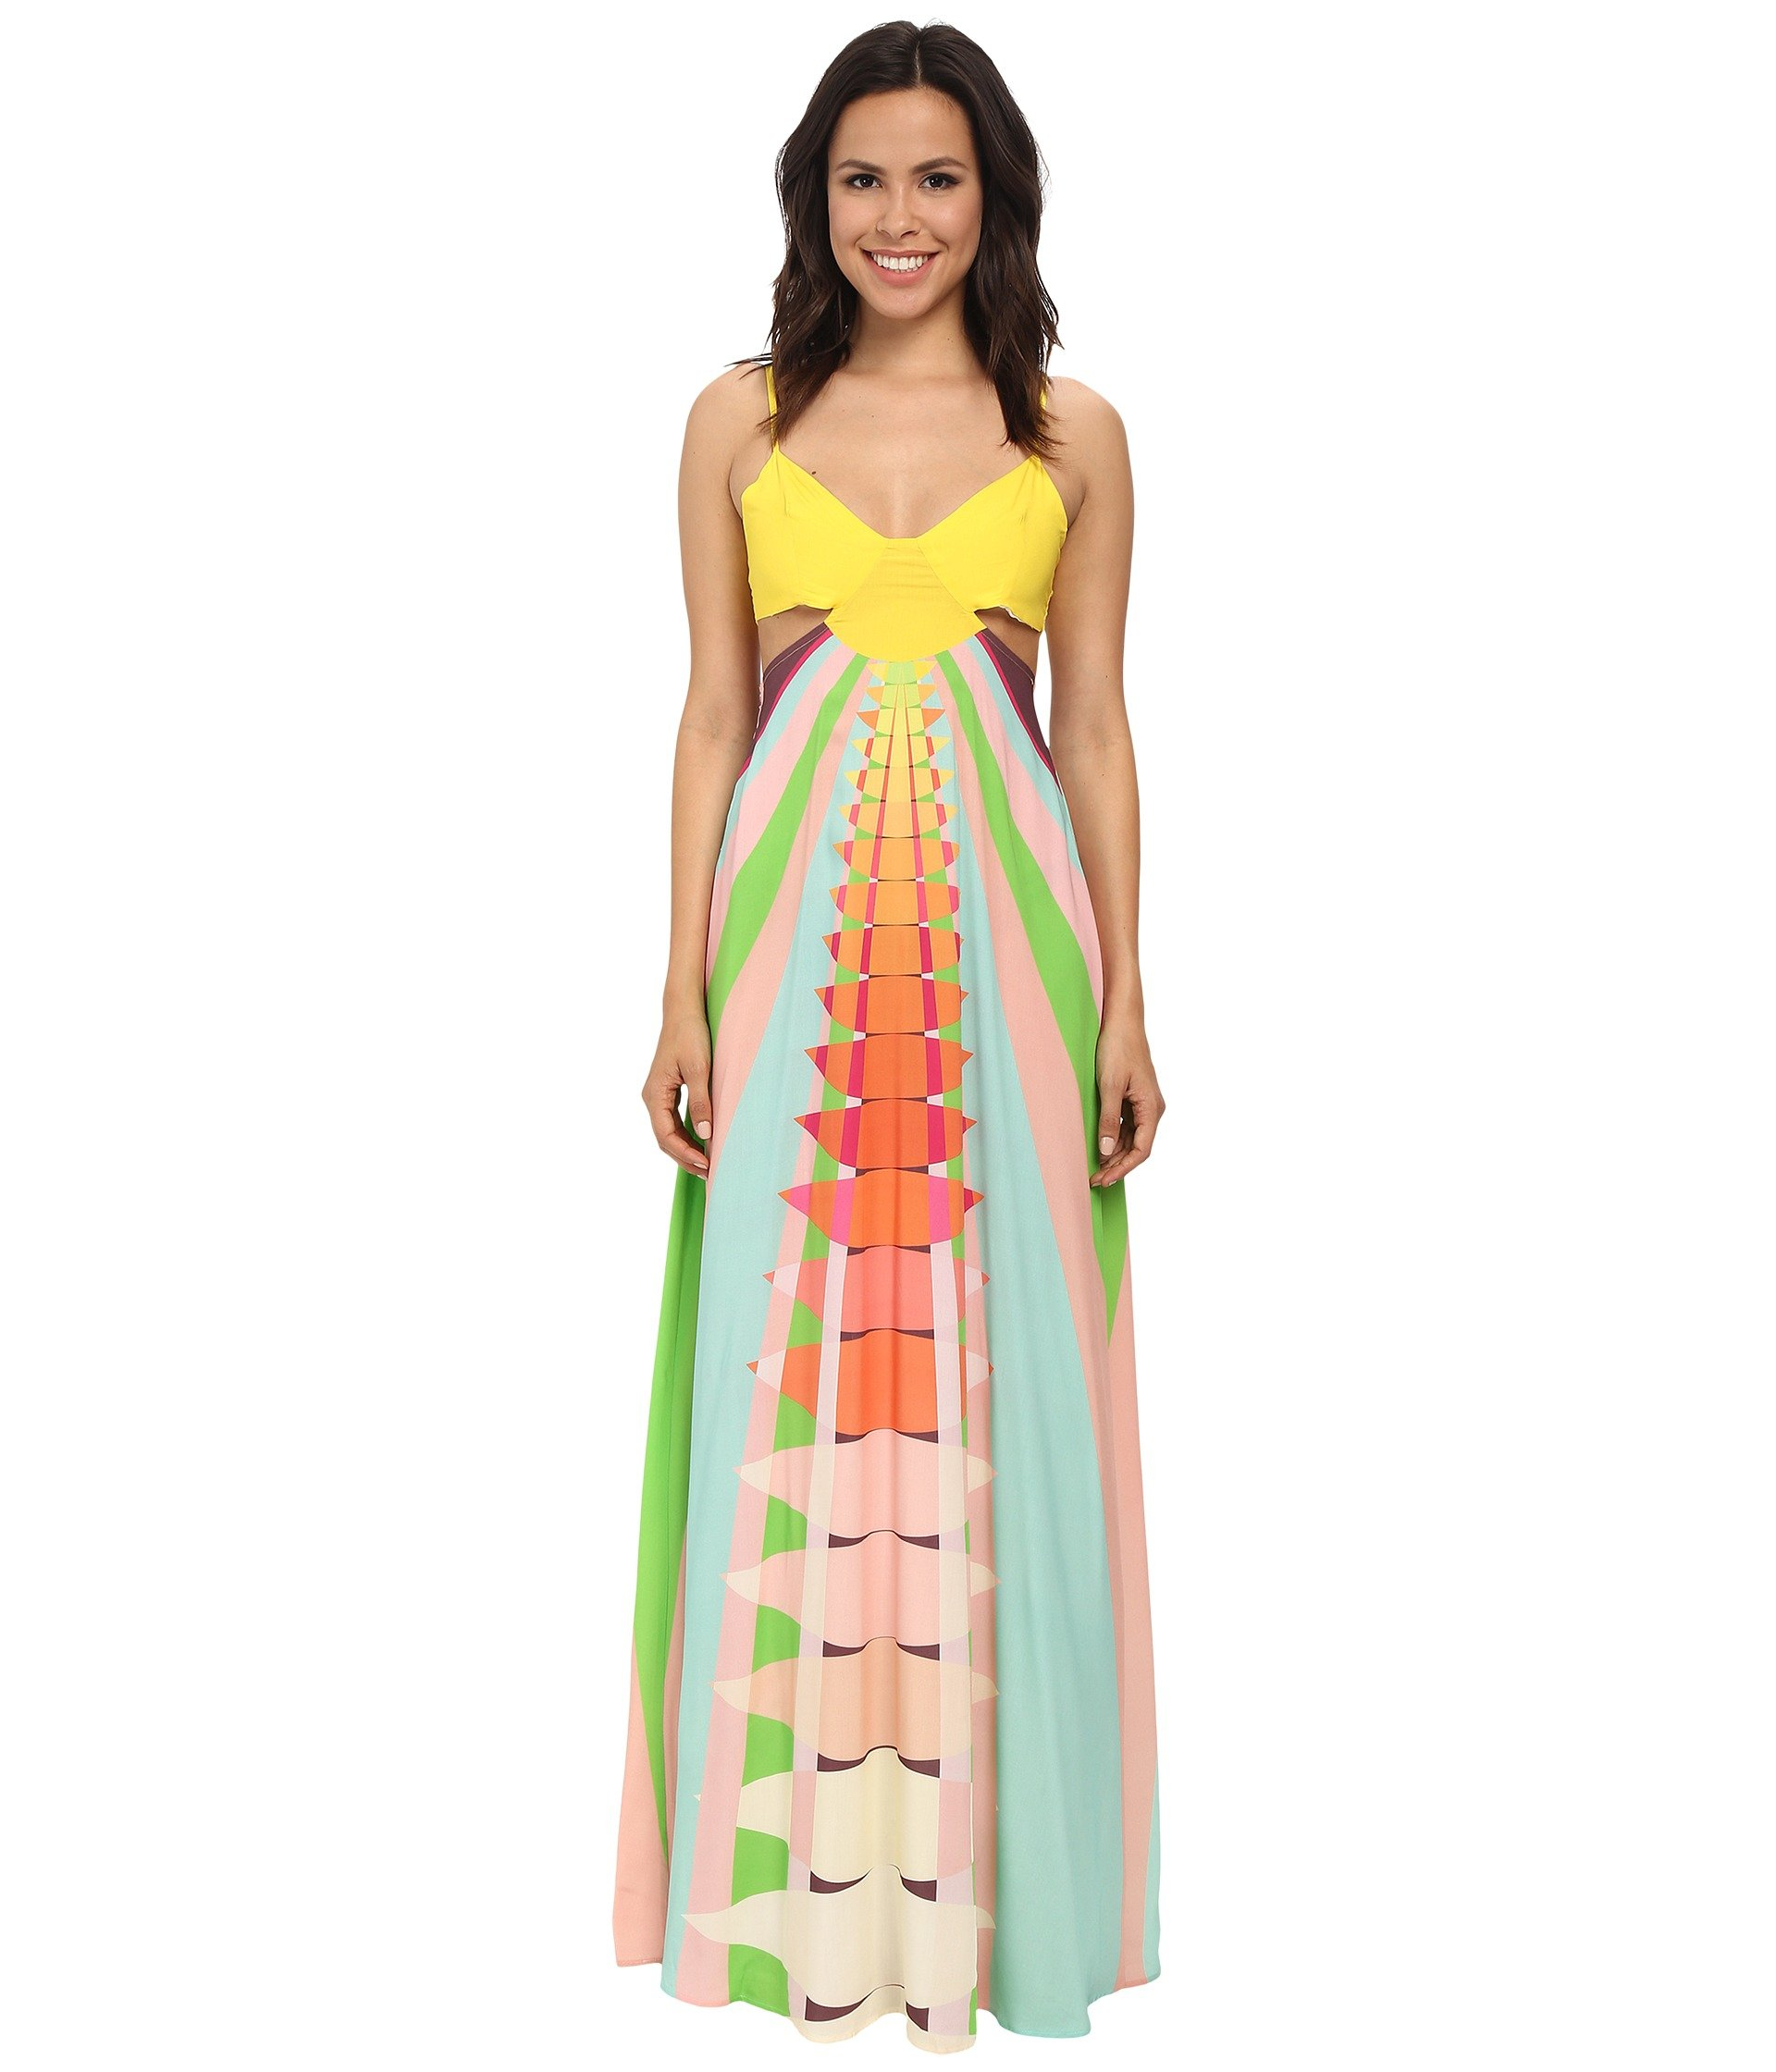 Mara hoffman Cutout Maxi Dress - Lyst